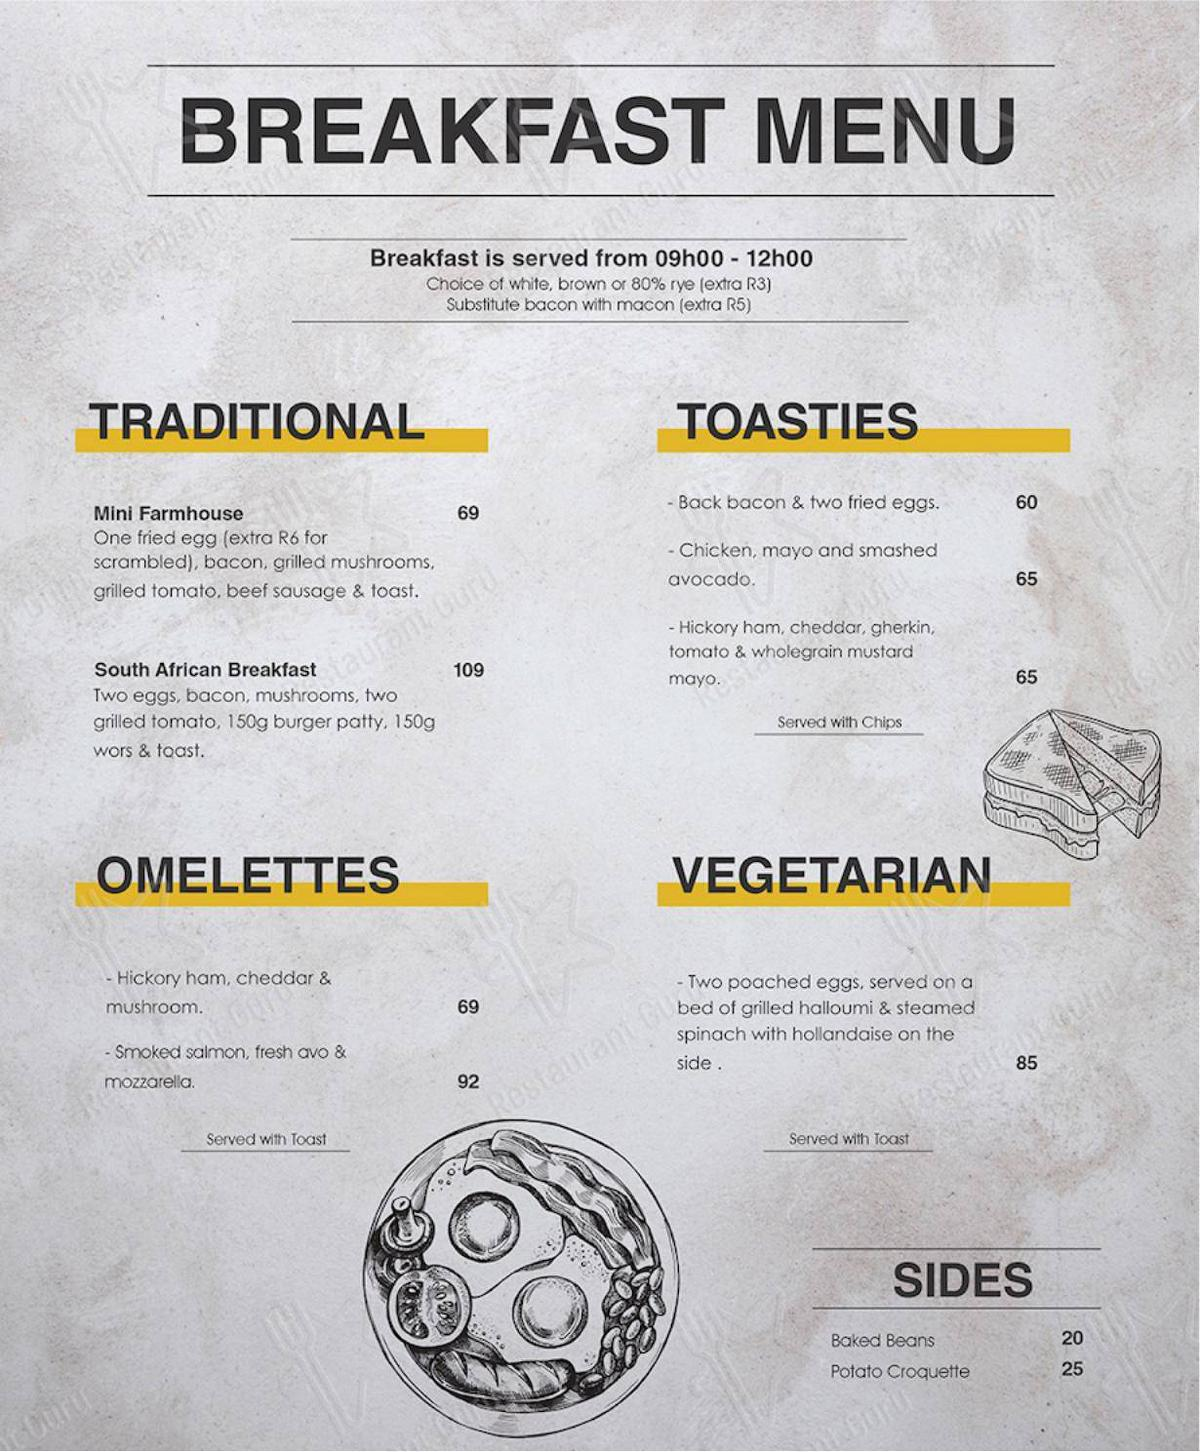 Delivery Menu for the Mike's Kitchen restaurant